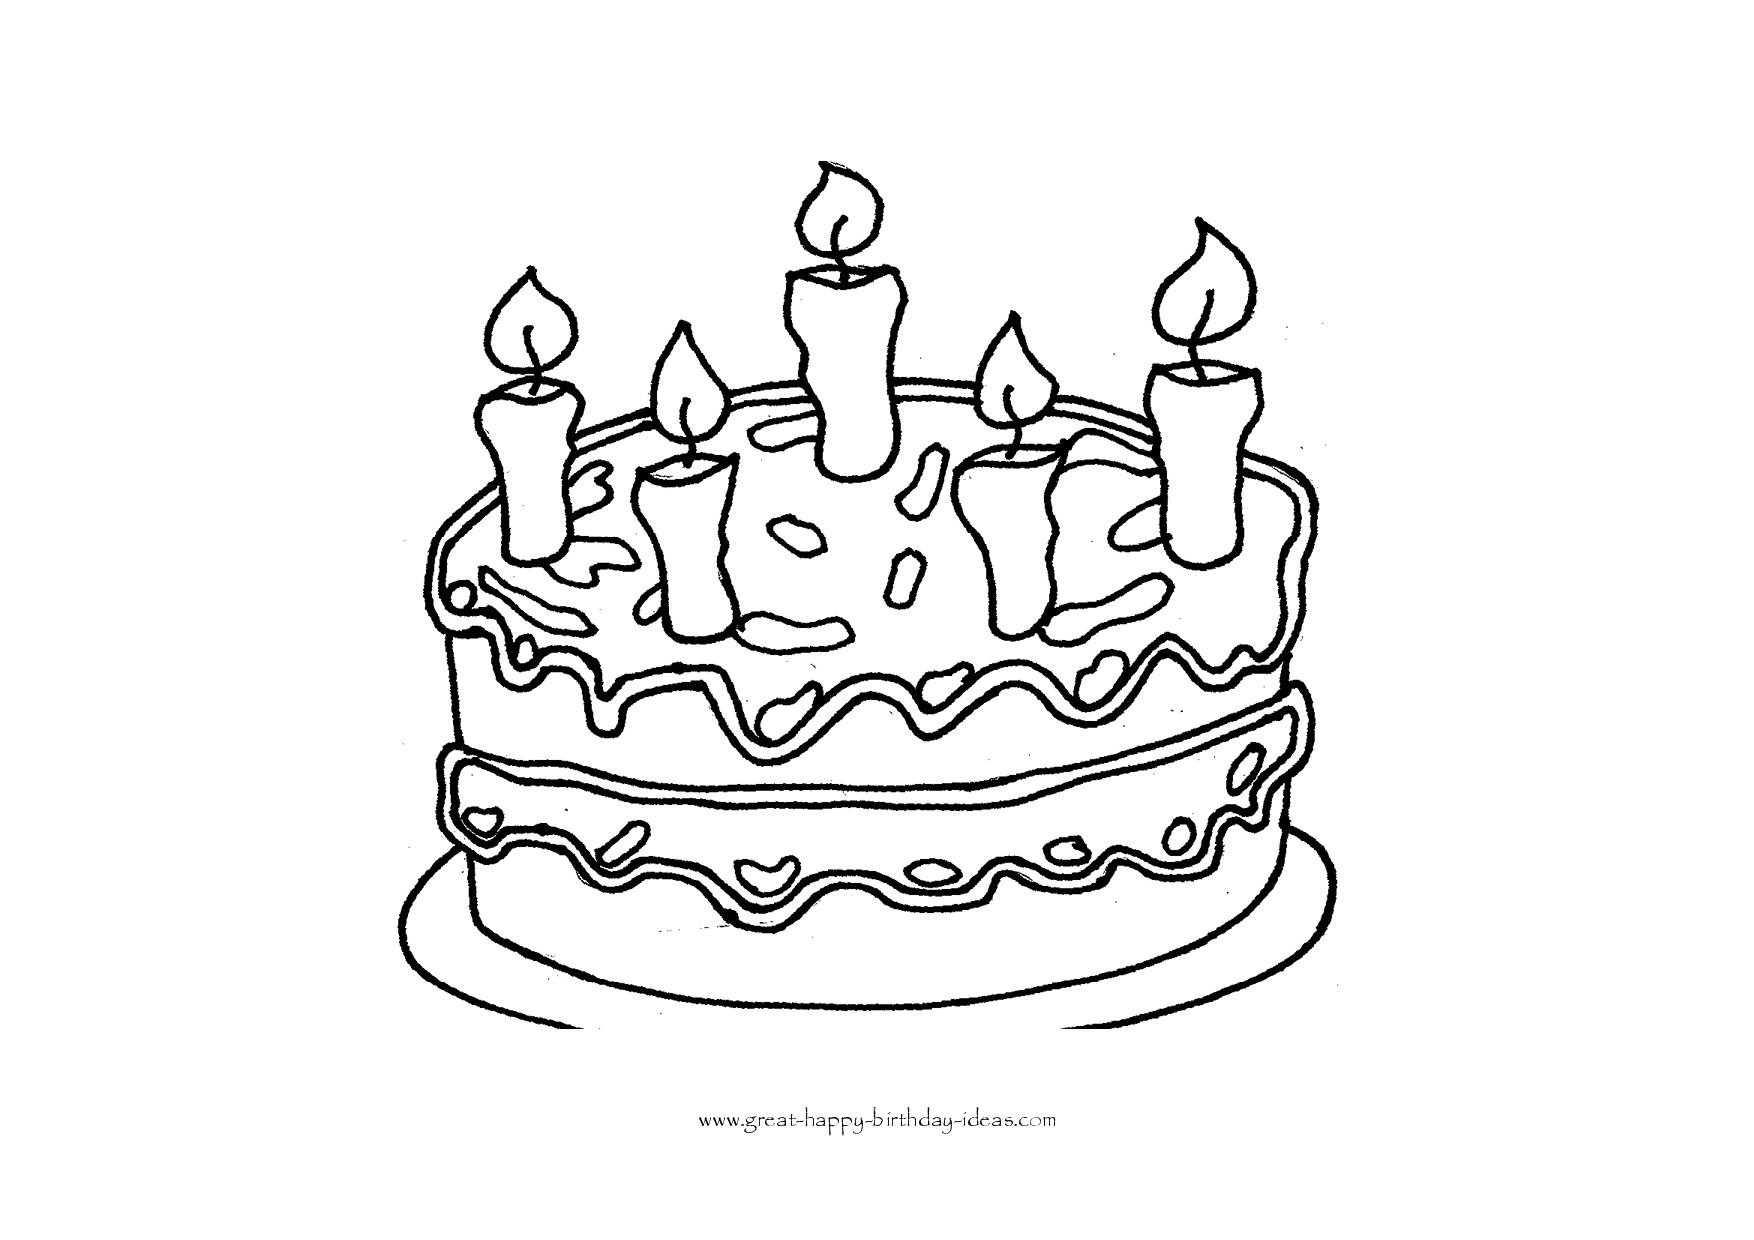 Best ideas about Birthday Cake Coloring Pages . Save or Pin Printable Birthday Coloring Pages Now.